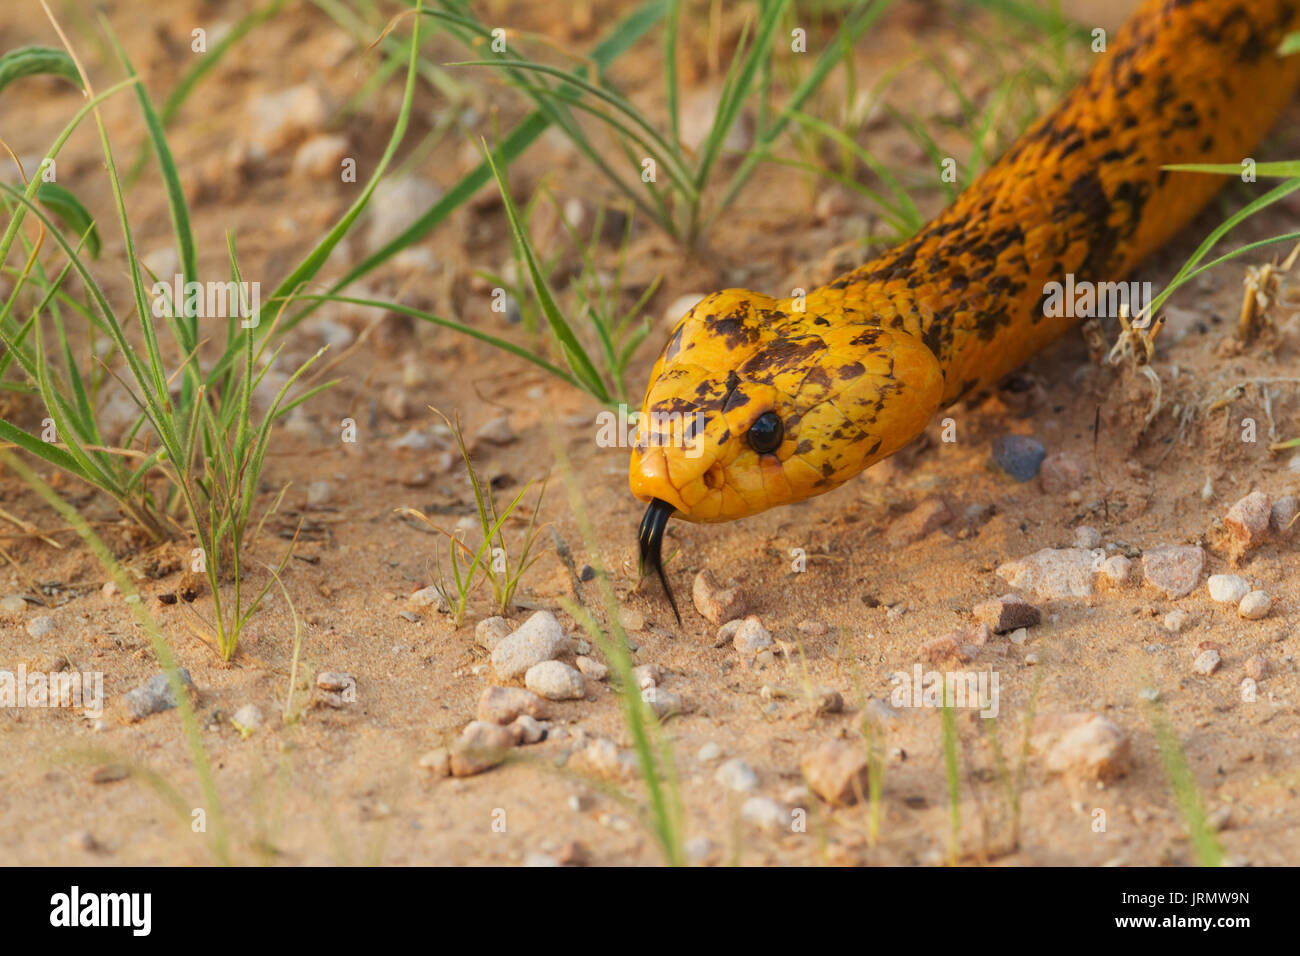 Cape Cobra (Naja nivea), sticking out tongue, during the rainy season in green grass, Kalahari Desert - Stock Image